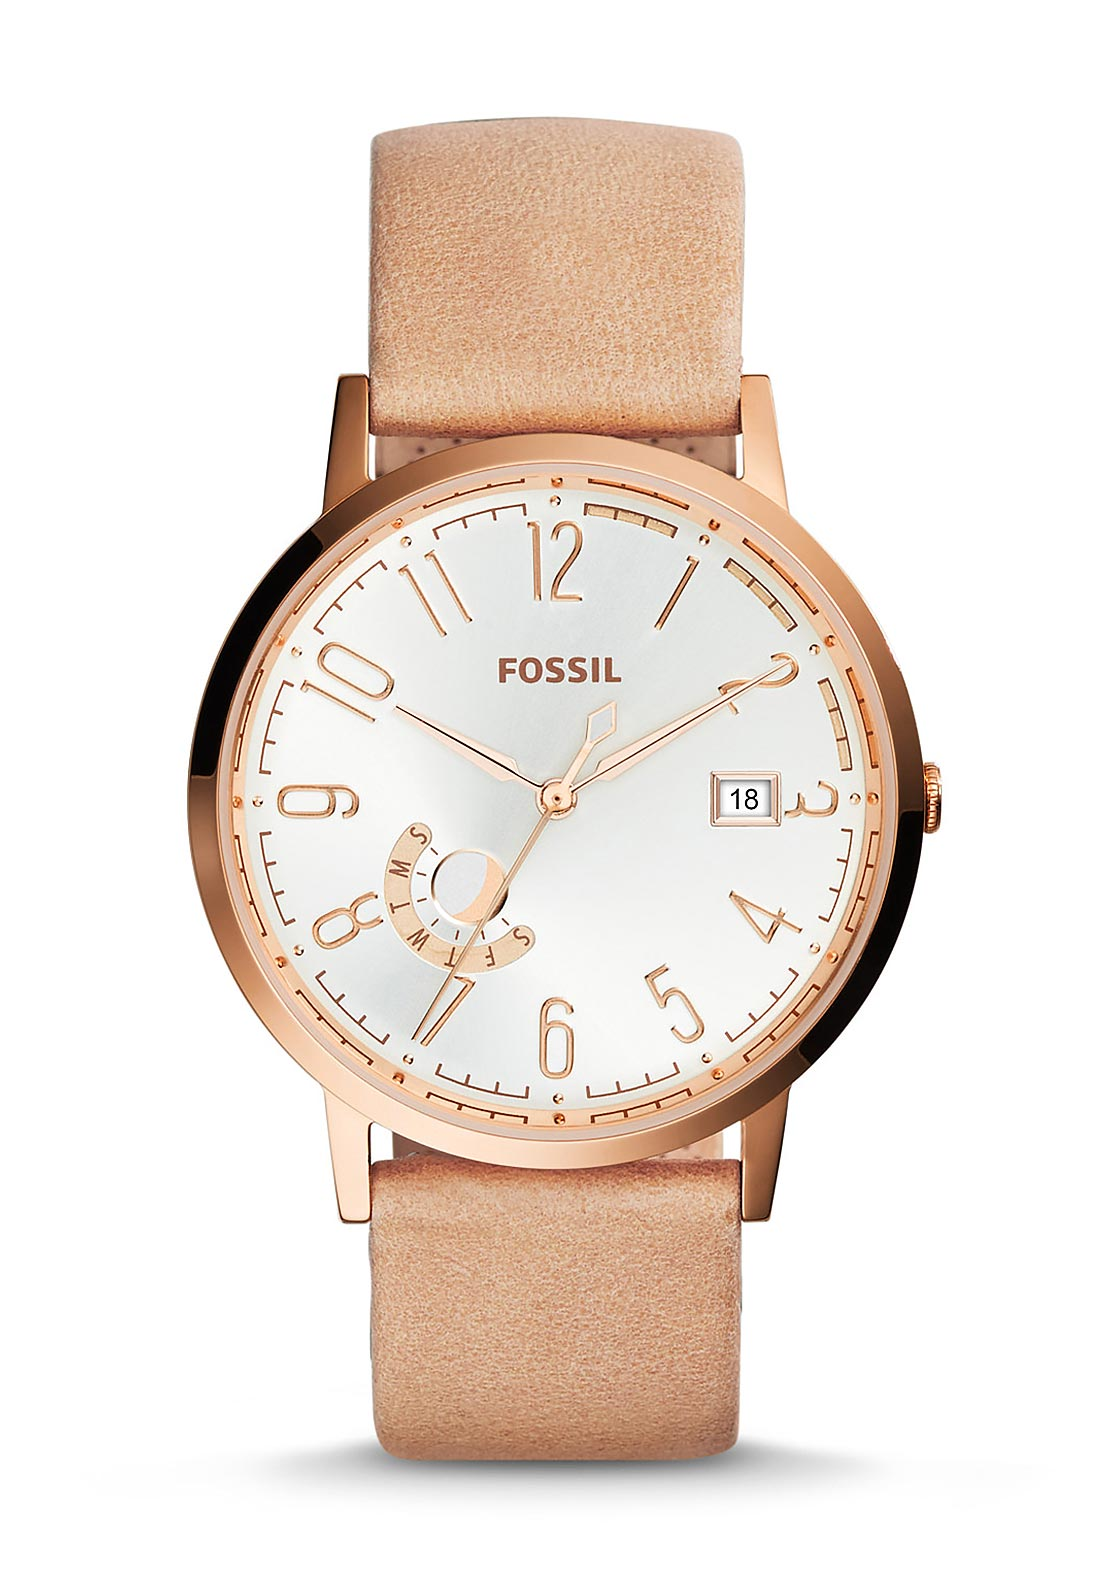 Fossil Womens Vintage Muse Watch, Sand